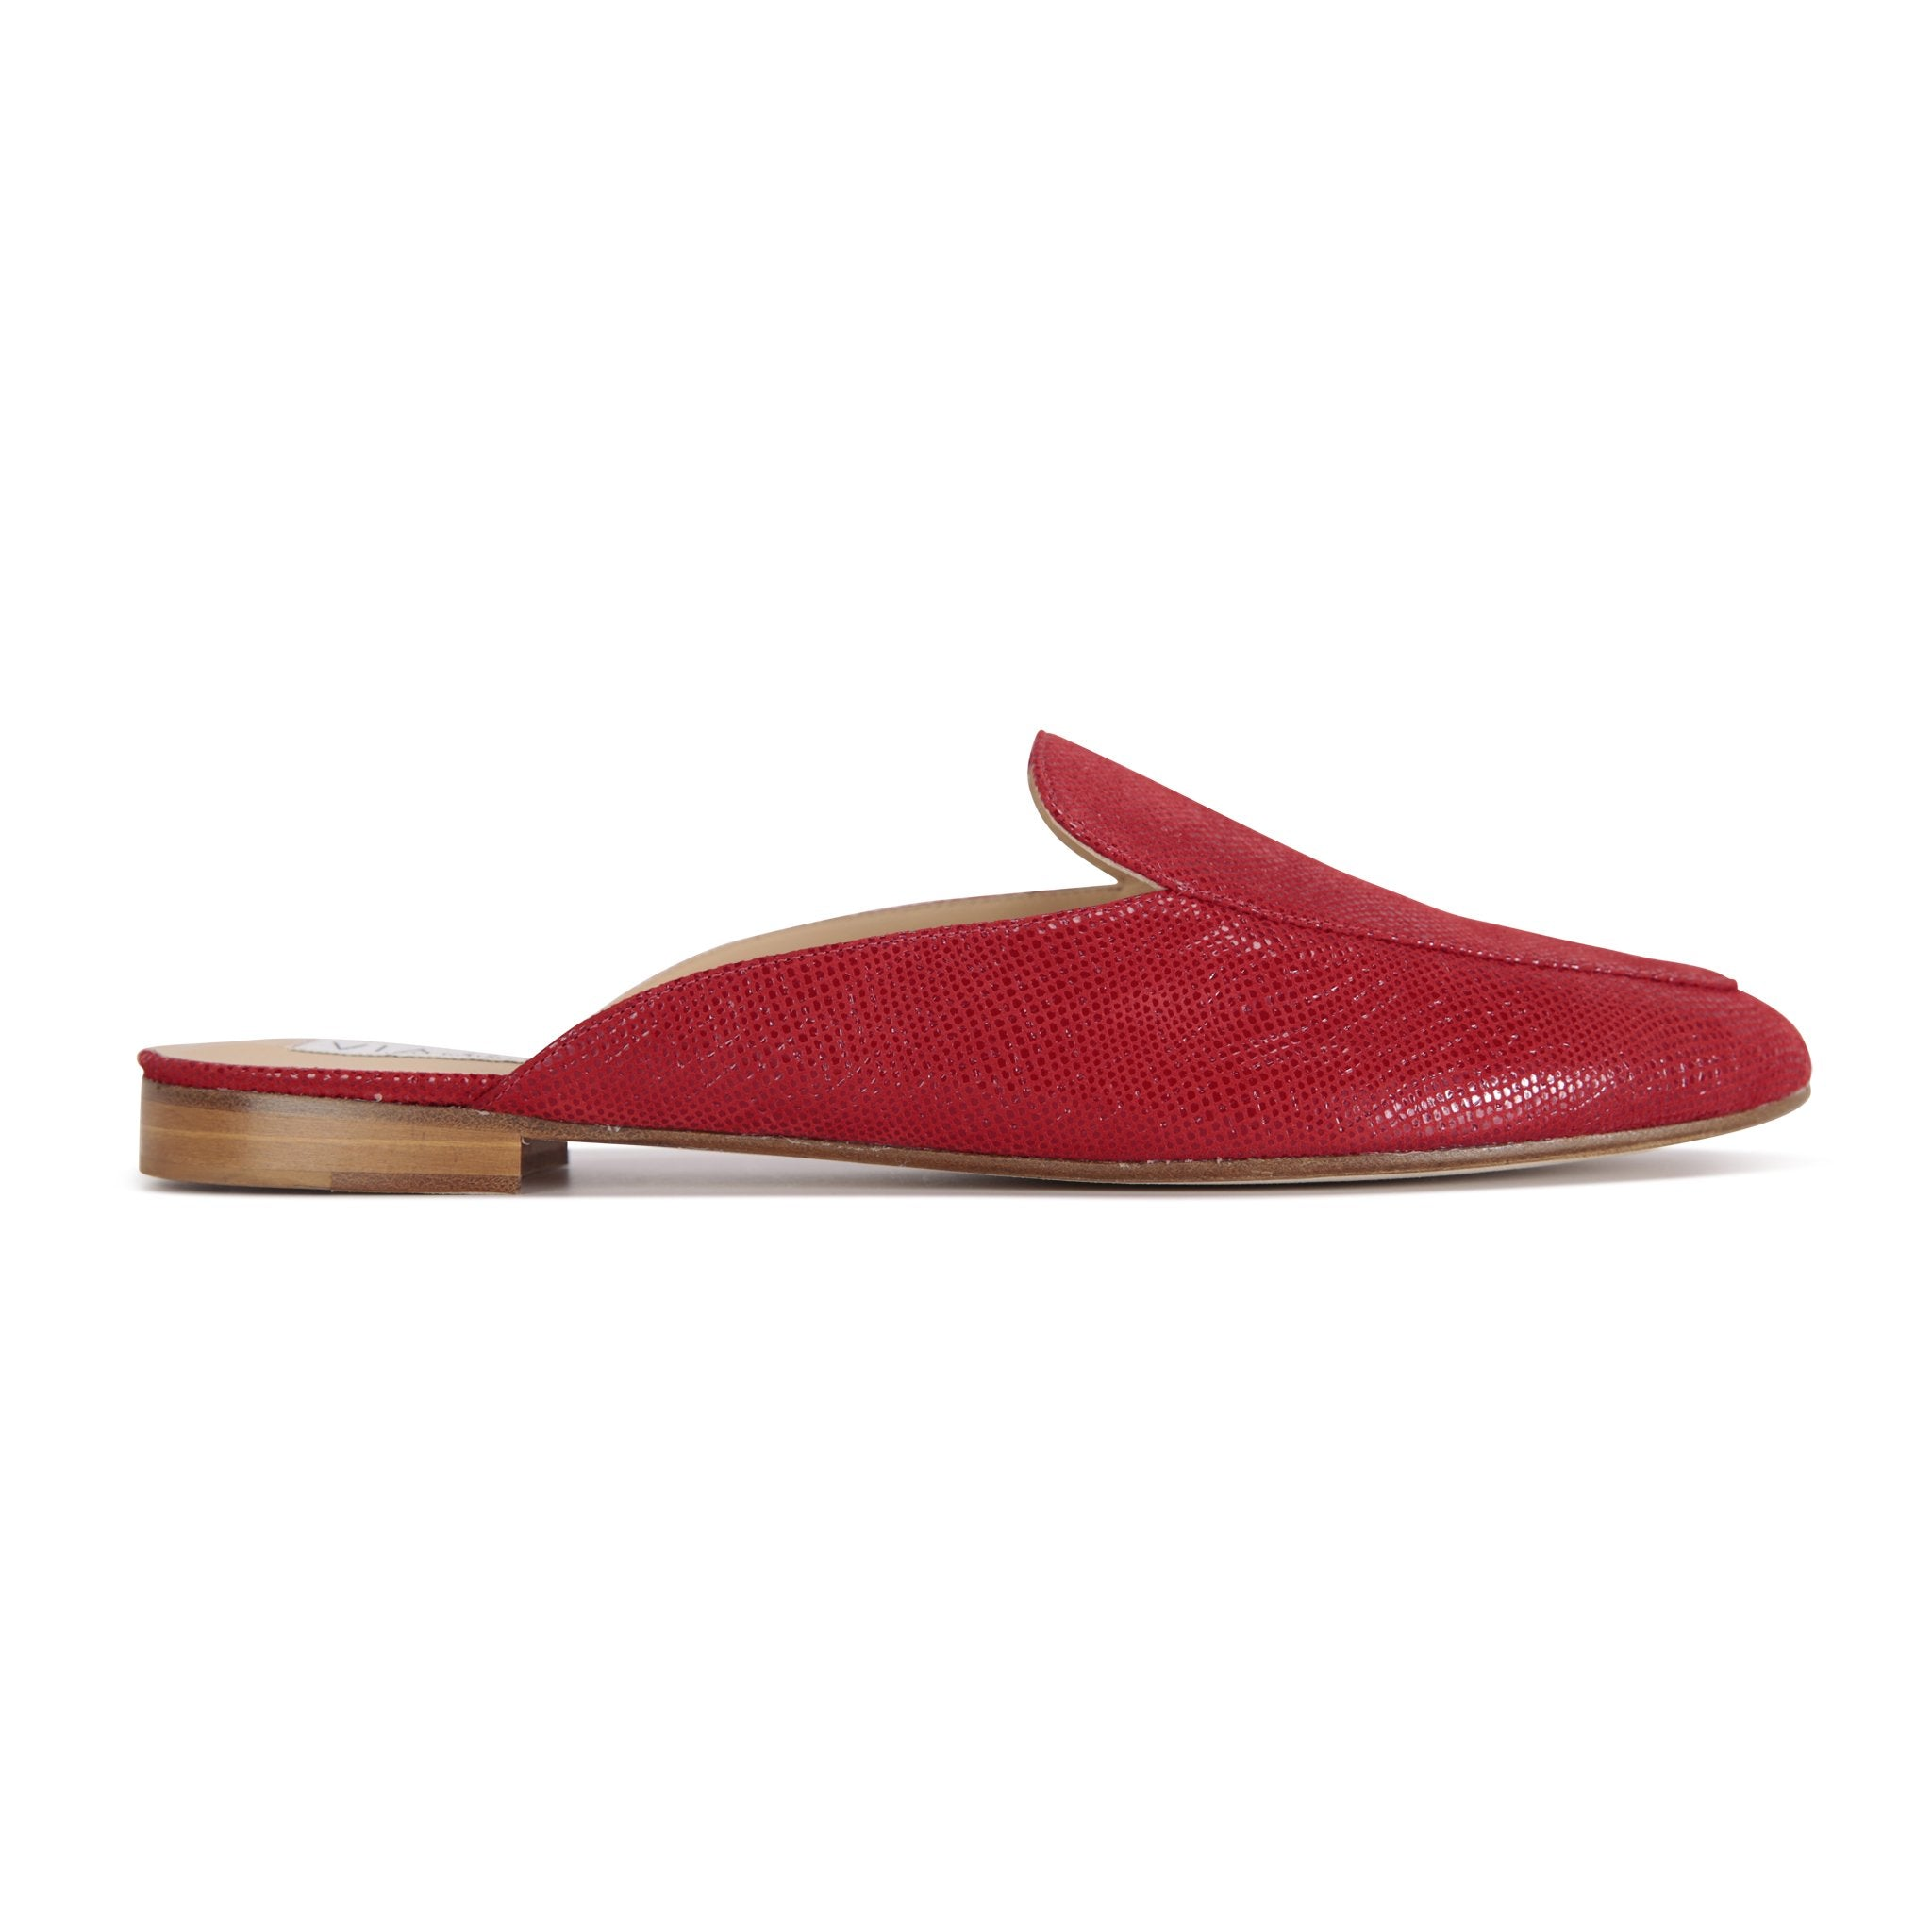 ISEO - Karung Rosso, VIAJIYU - Women's Hand Made Sustainable Luxury Shoes. Made in Italy. Made to Order.